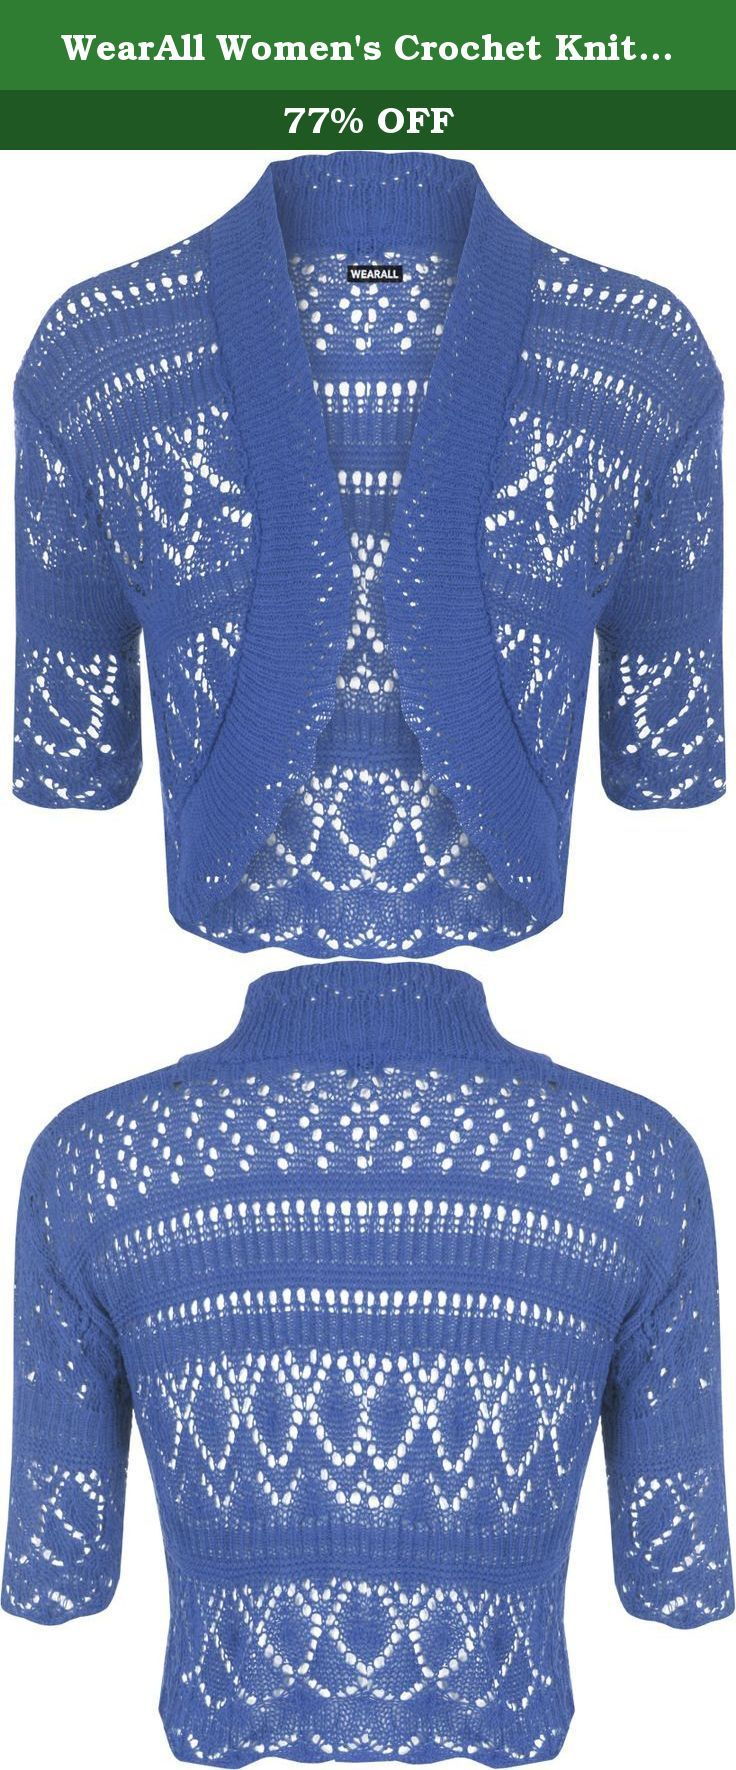 WearAll Women's Crochet Knitted Short Sleeve Bolero - Royal Blue - US 10-12 (UK 14-16). This lovely versatile crochet style knitted cardigan is an absolute must have wardrobe staple as it can easily be worn over a variety of different outfits. Made from a soft stretch fabric and worn open, try teaming up with a simple top, a pair of jeans and flats for a simple day time look, or throw over a party dress for a stunning evening outfit. Note: Despite every effort to accurately depict each...